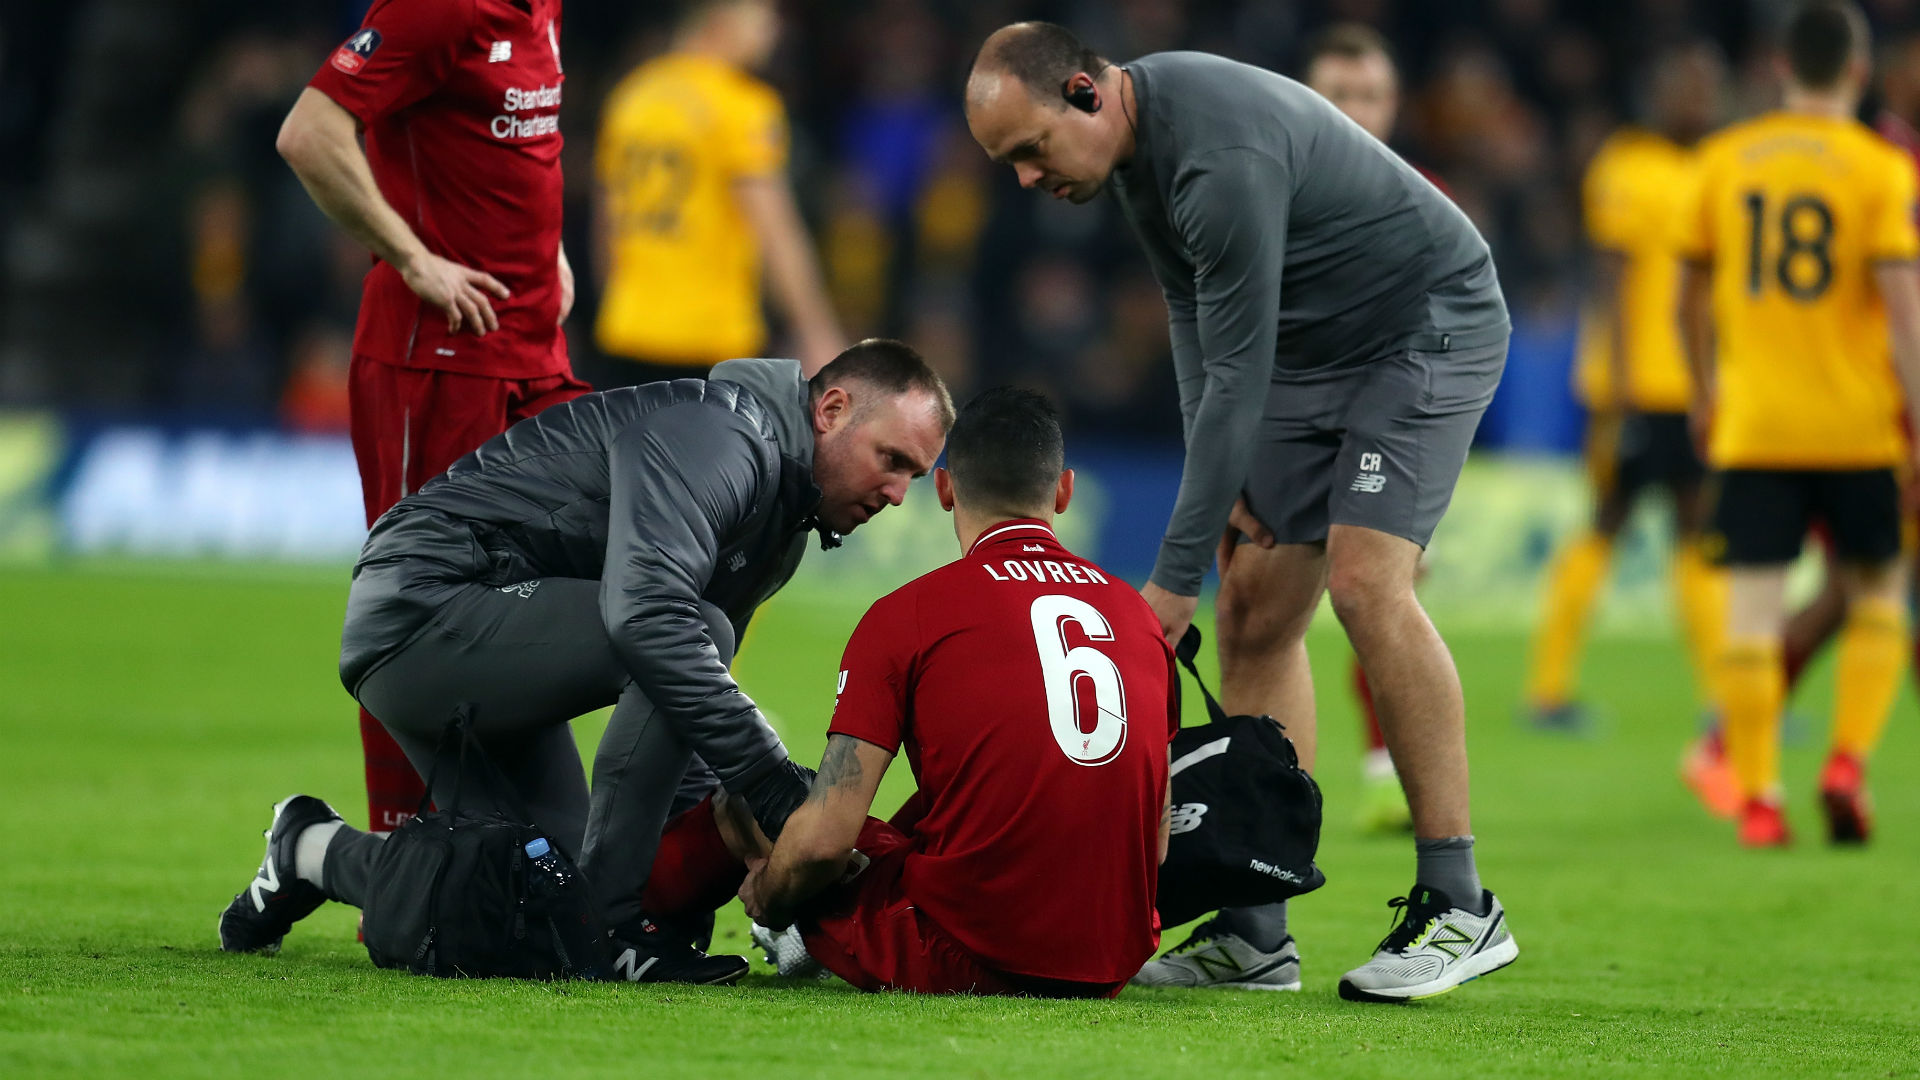 Klopp confirms hamstring injury for Liverpool defender Lovren